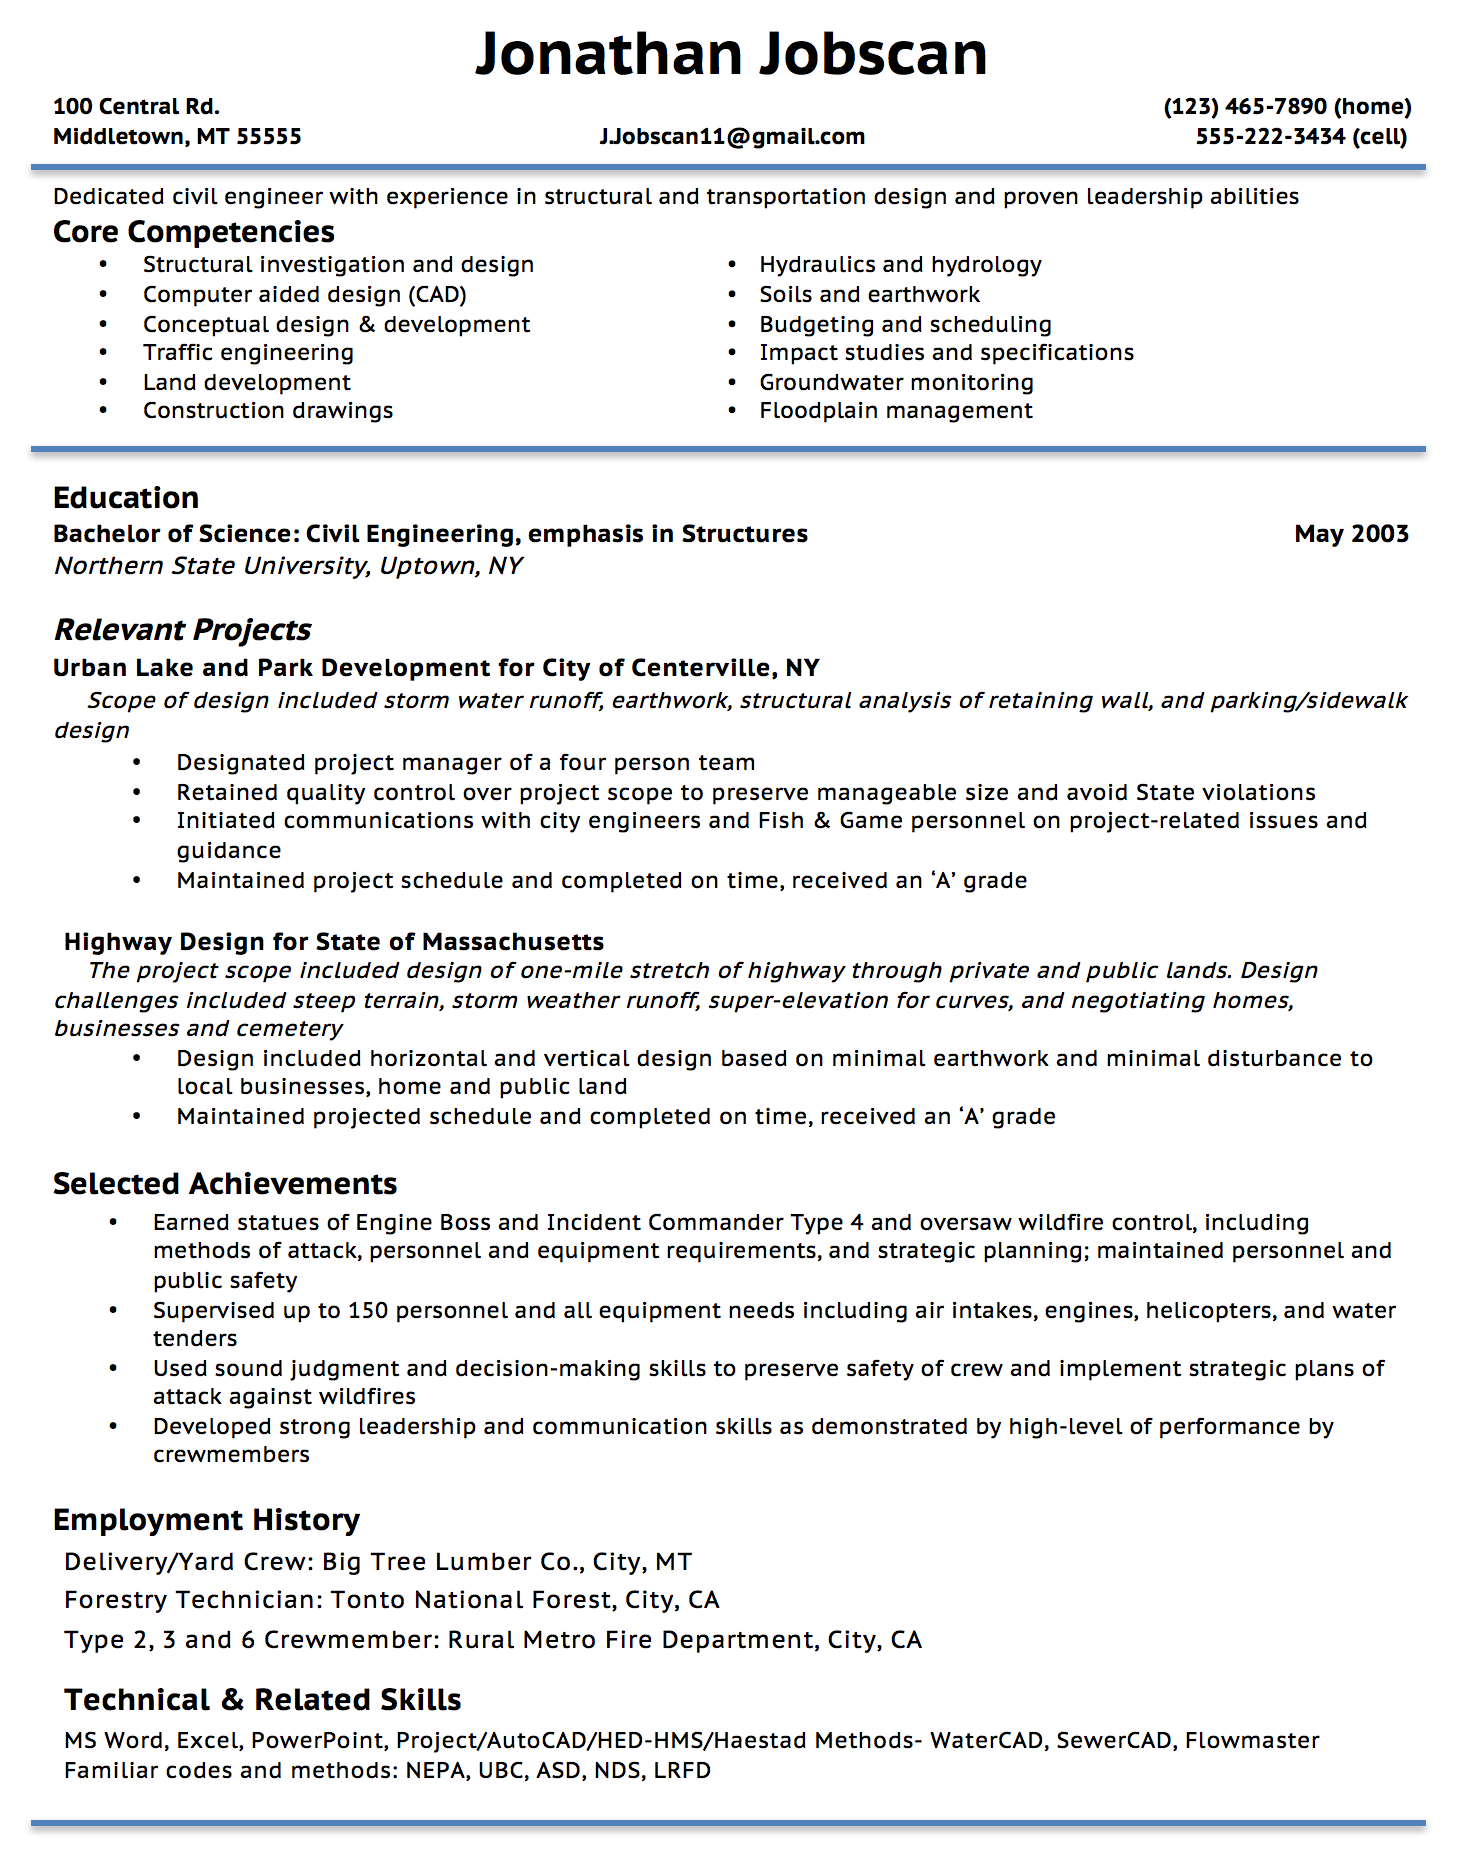 Opposenewapstandardsus  Marvelous Resume Writing Guide  Jobscan With Hot Example Of A Functional Resume Format With Beauteous Usa Jobs Resume Example Also Aviation Resume In Addition Resume Skills List Examples And Keywords In Resume As Well As Med School Resume Additionally Blank Resumes From Jobscanco With Opposenewapstandardsus  Hot Resume Writing Guide  Jobscan With Beauteous Example Of A Functional Resume Format And Marvelous Usa Jobs Resume Example Also Aviation Resume In Addition Resume Skills List Examples From Jobscanco